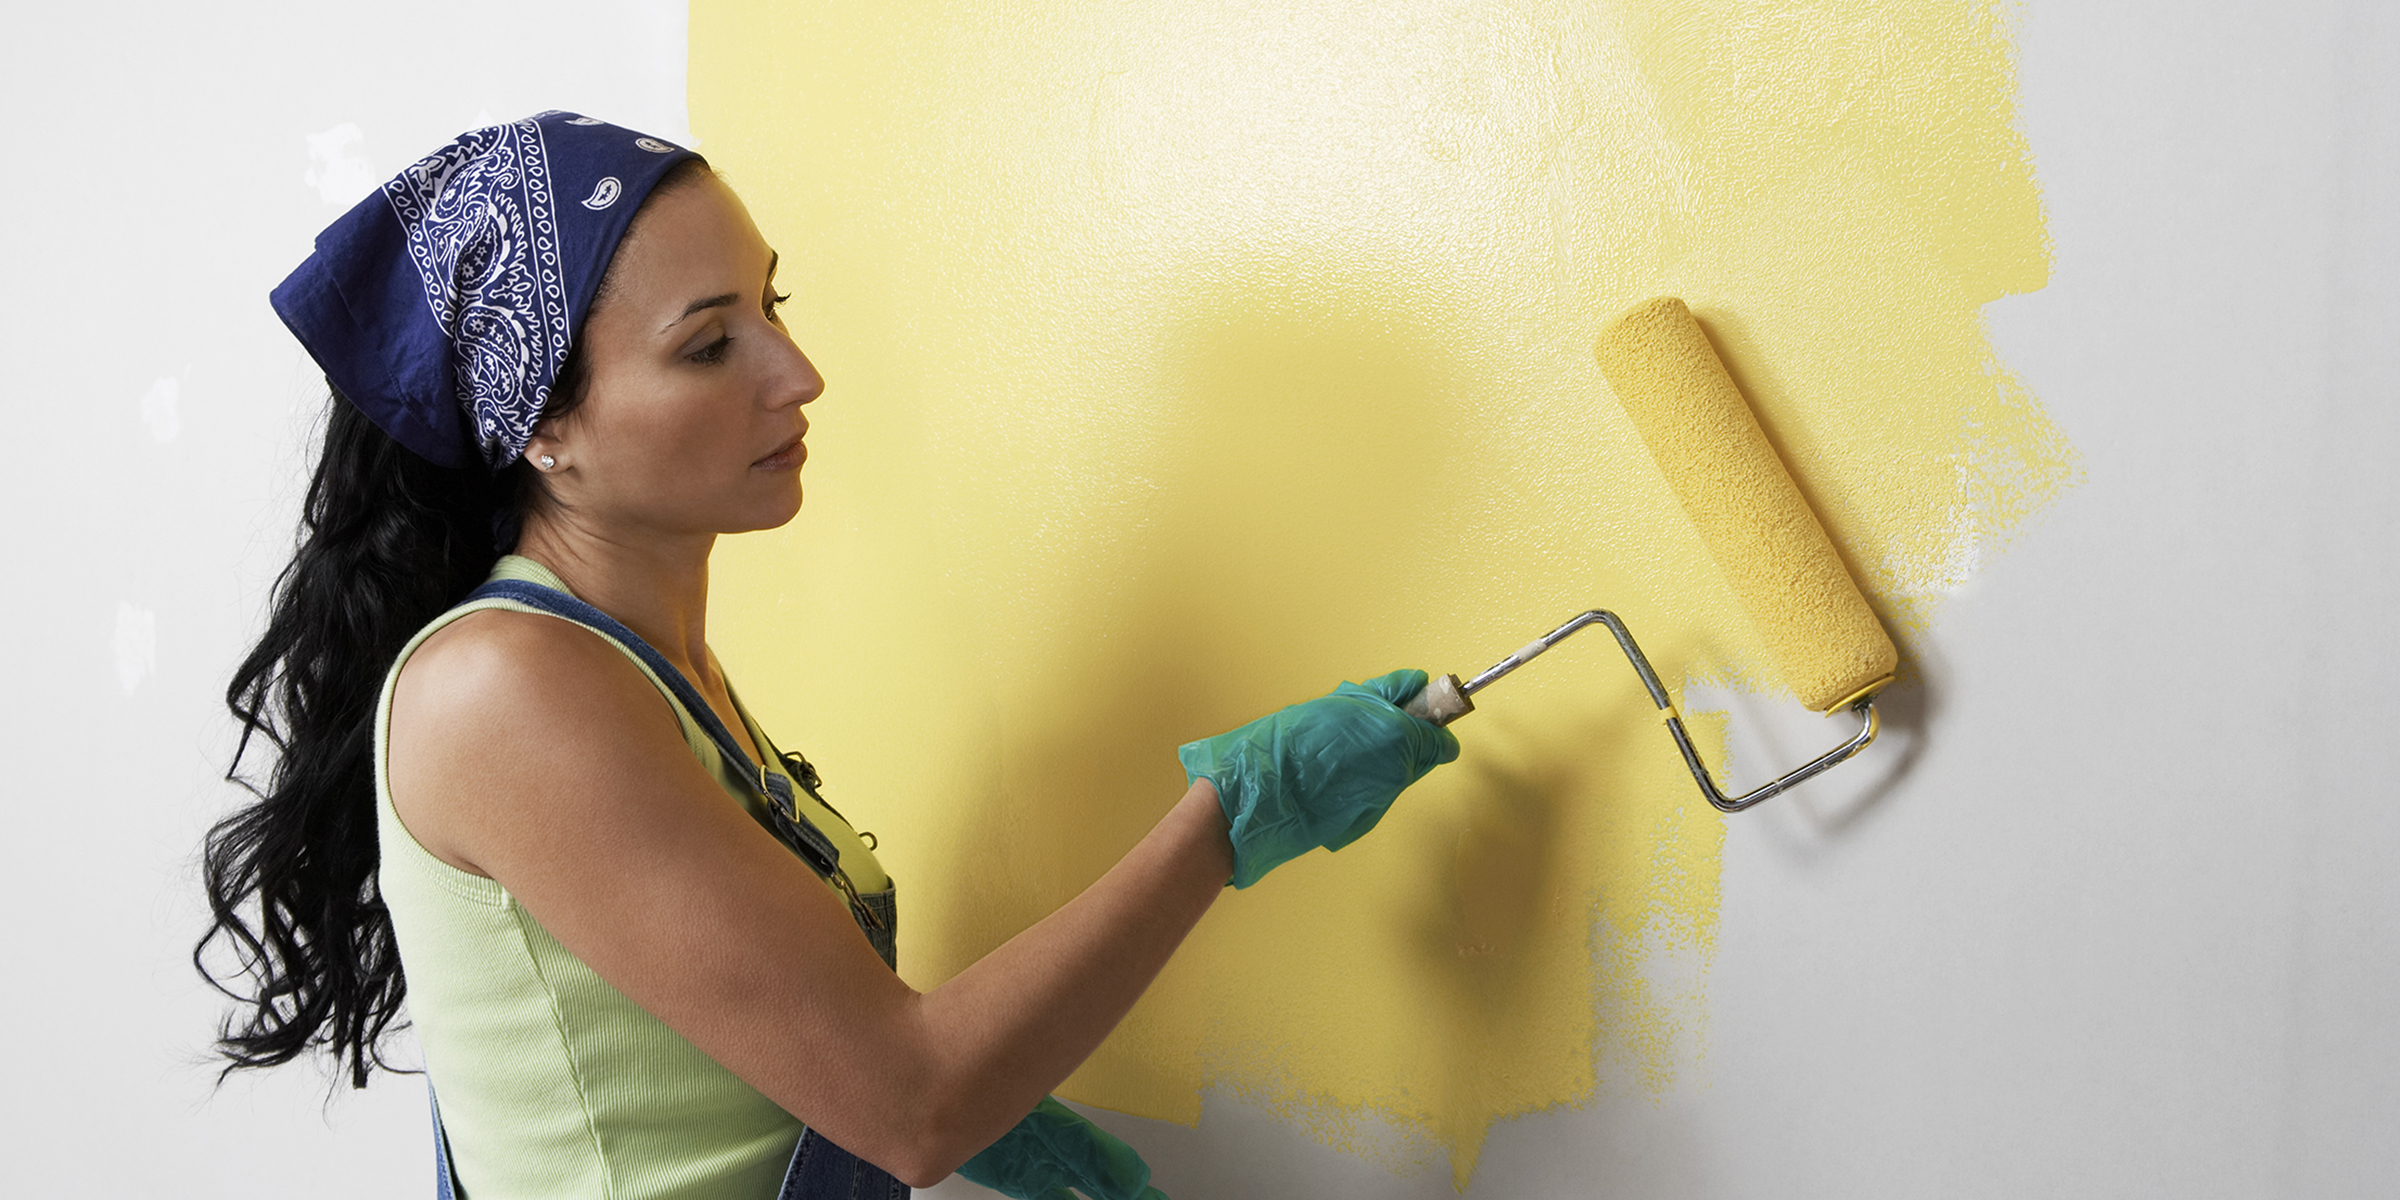 Painting Contractor Tips for Painting Edges